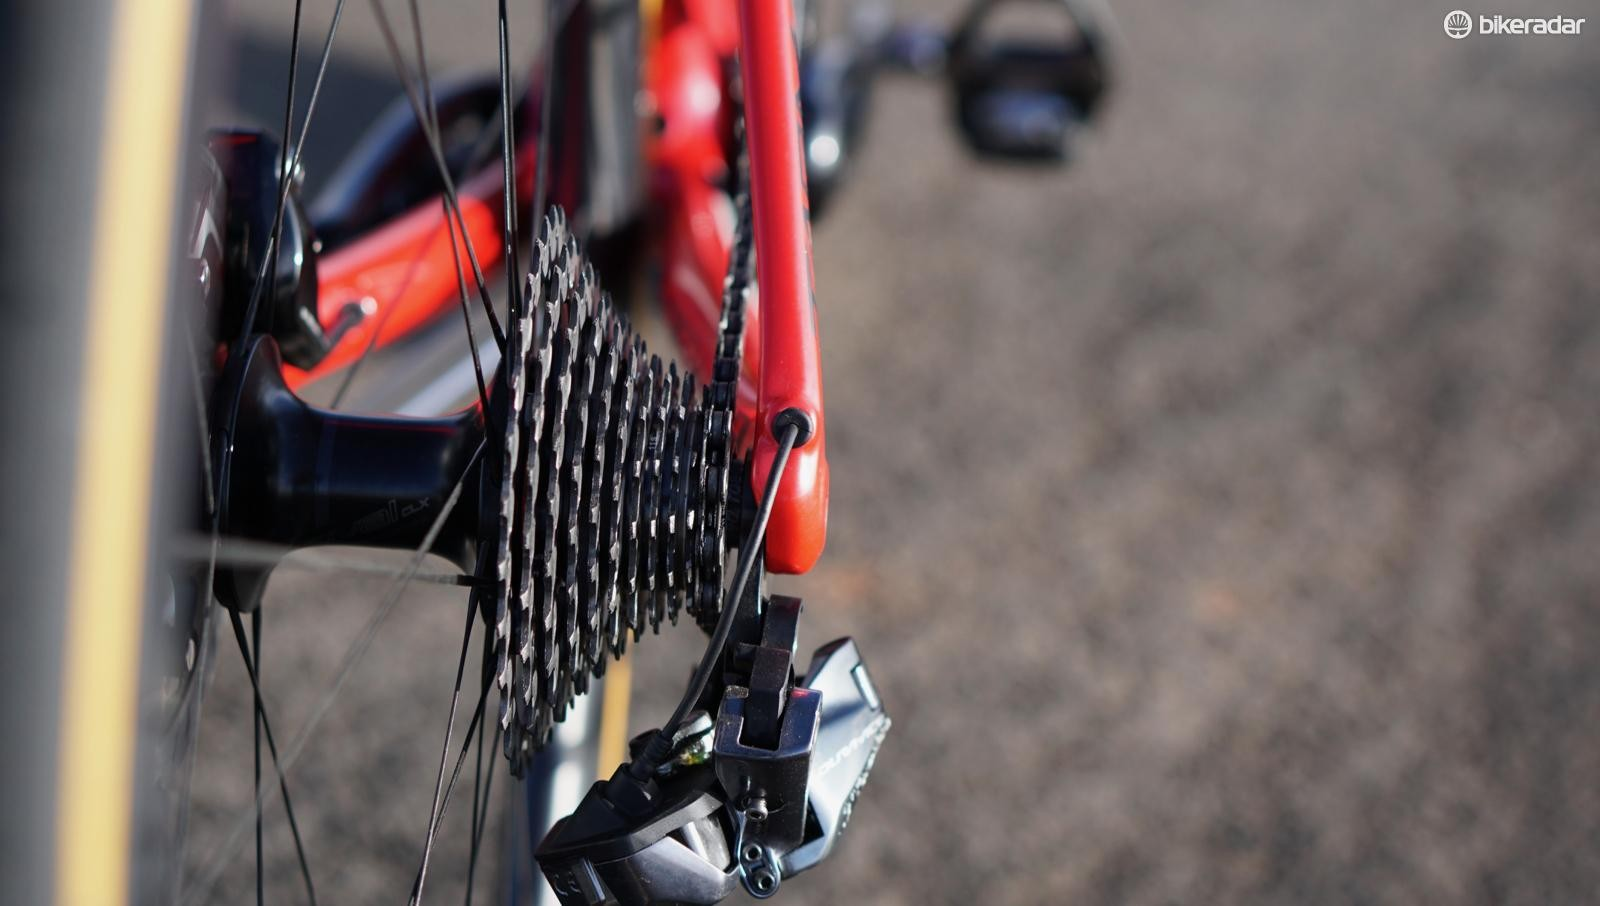 The new Dura-Ace 9170 derailleur tucks well underneath the cassette, even when in the 11t